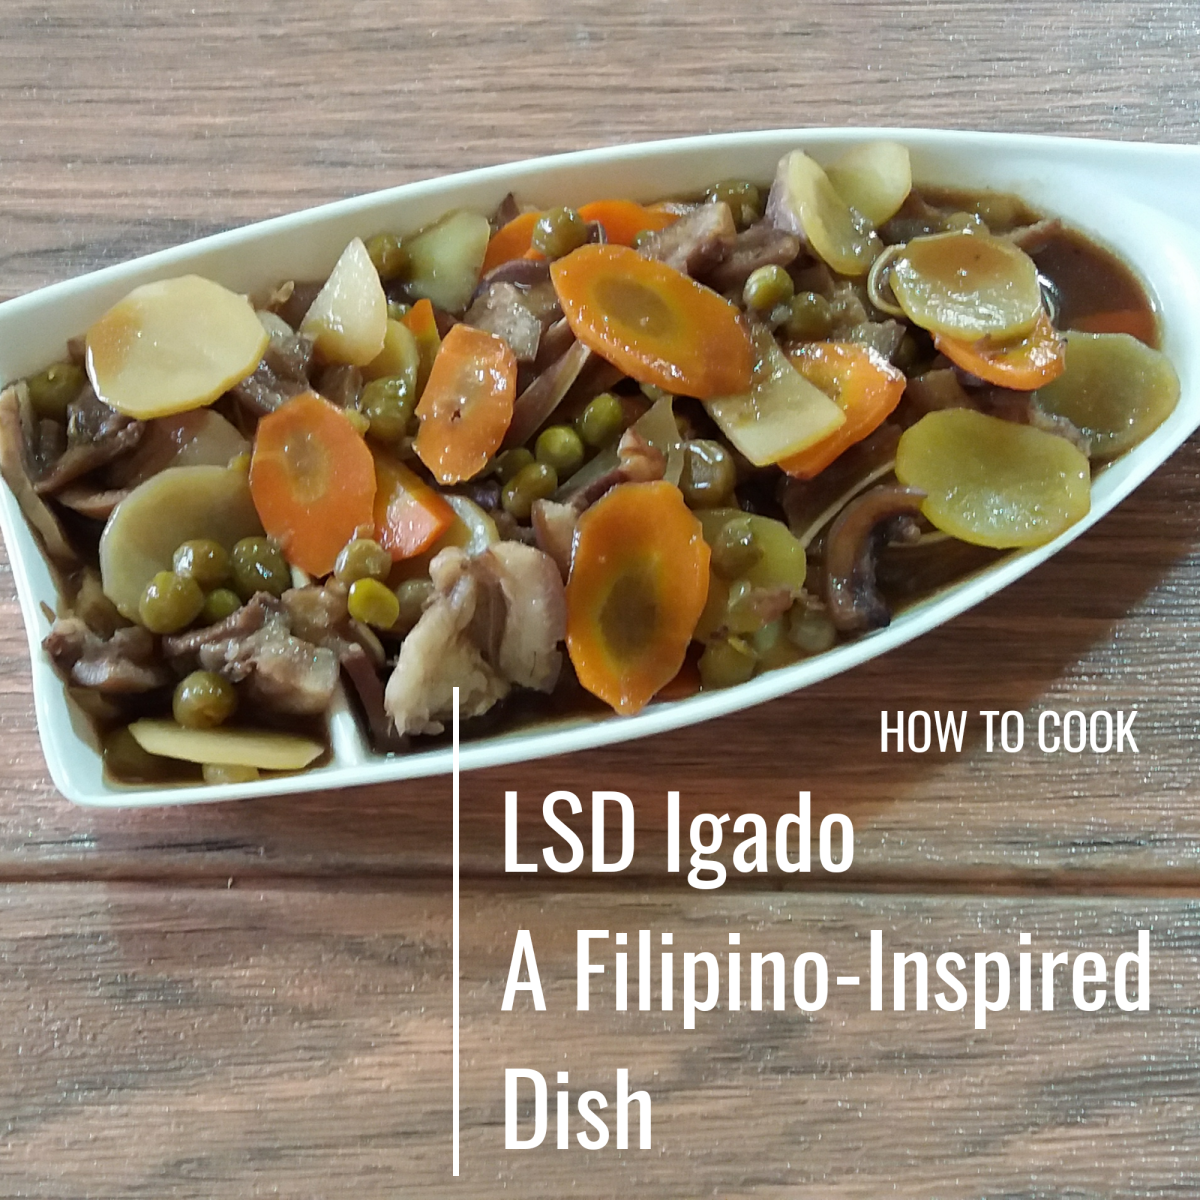 How to Make LSD Igado: A Filipino-Inspired Dish